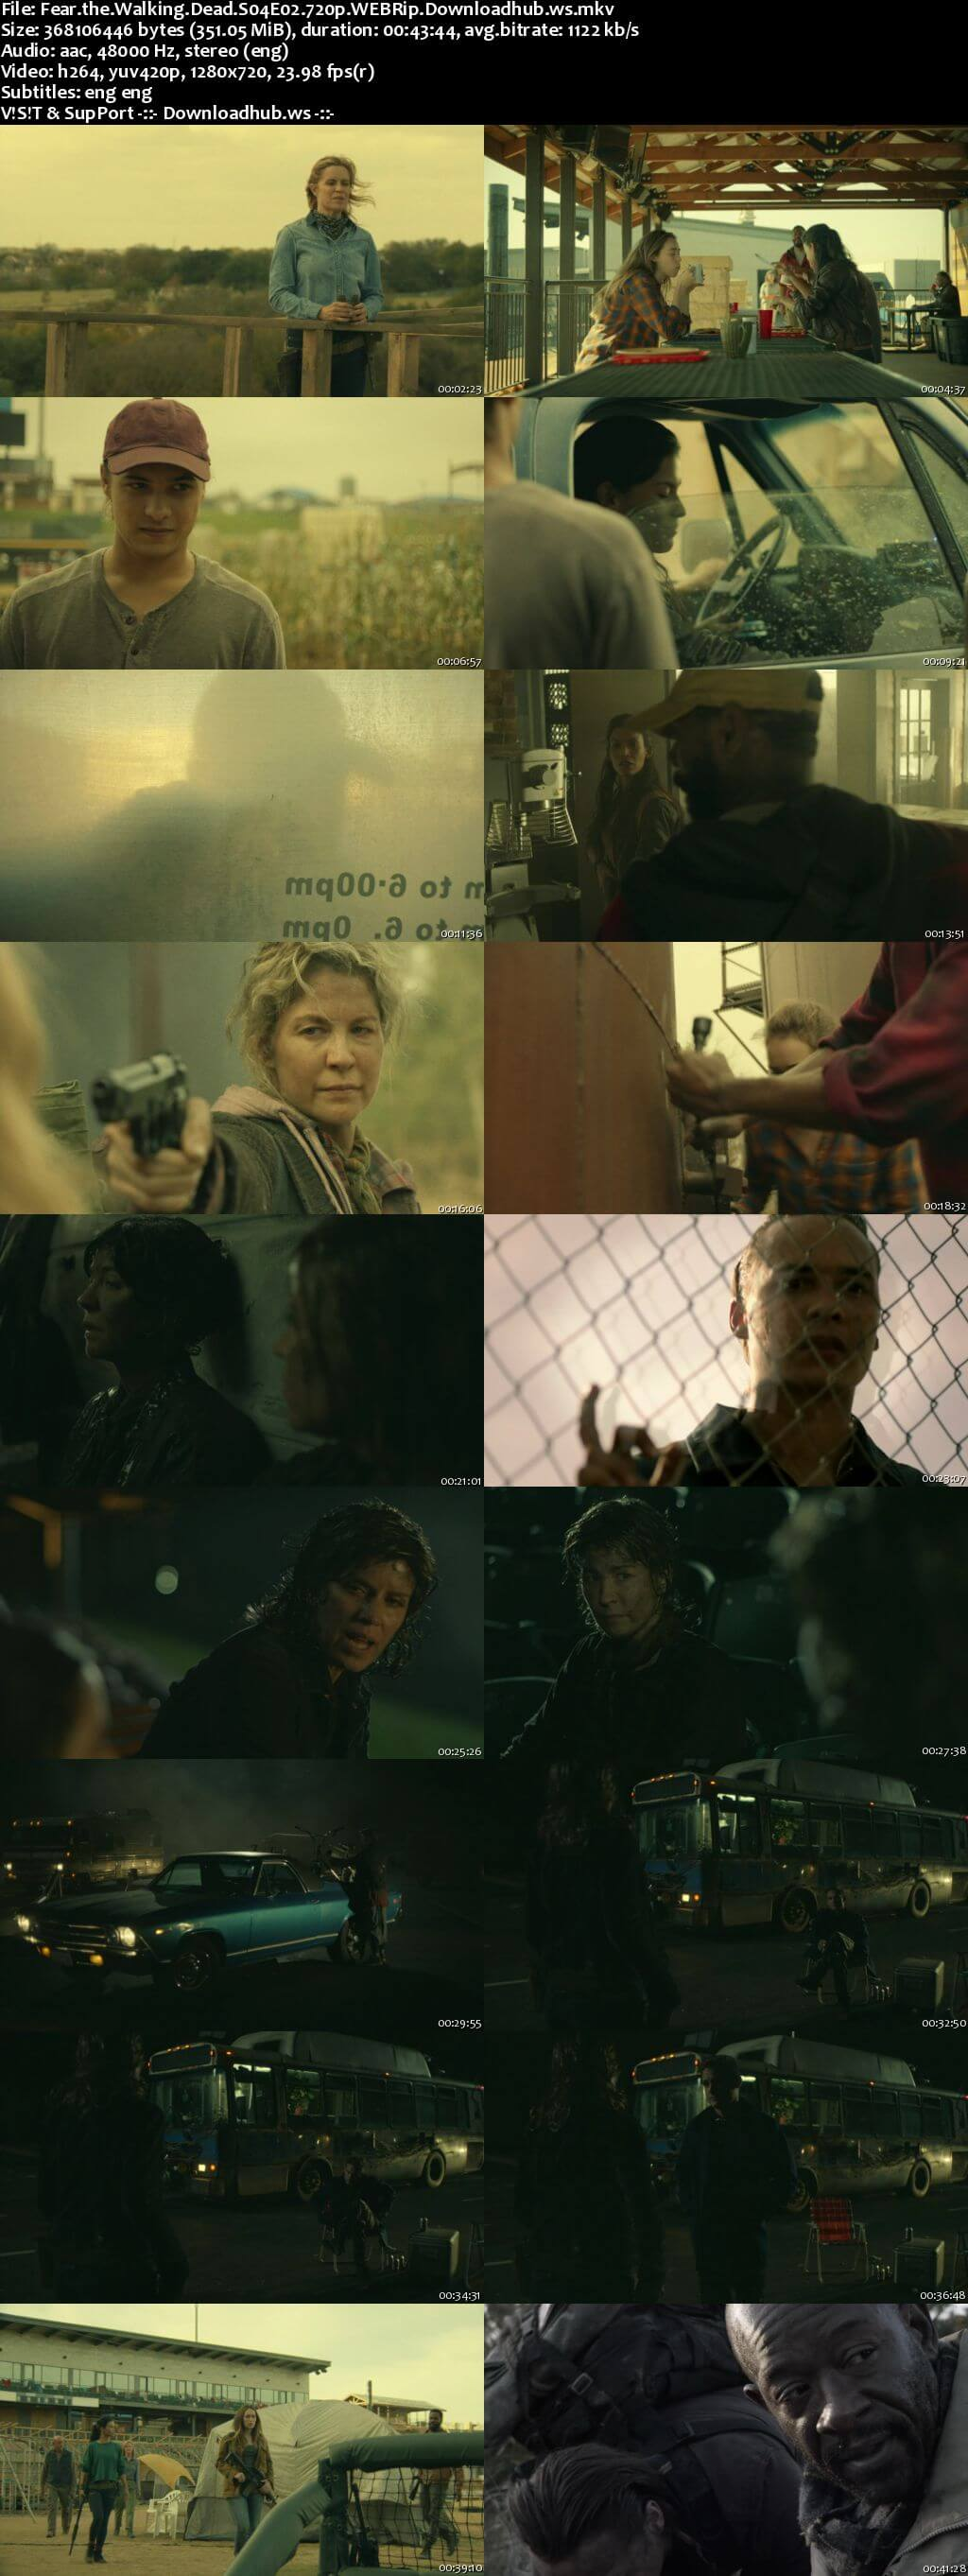 Fear the Walking Dead S04E02 350MB WEBRip 720p x264 ESubs